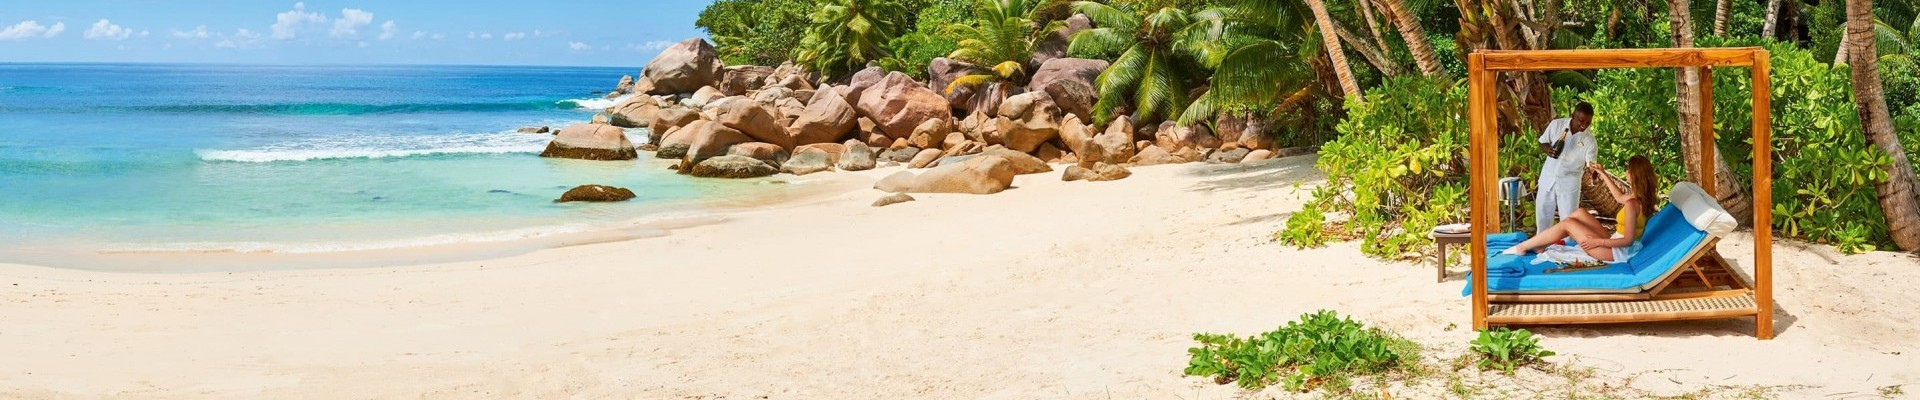 5* Constance Lemuria Resort - Seychelles Package (7 Nights)